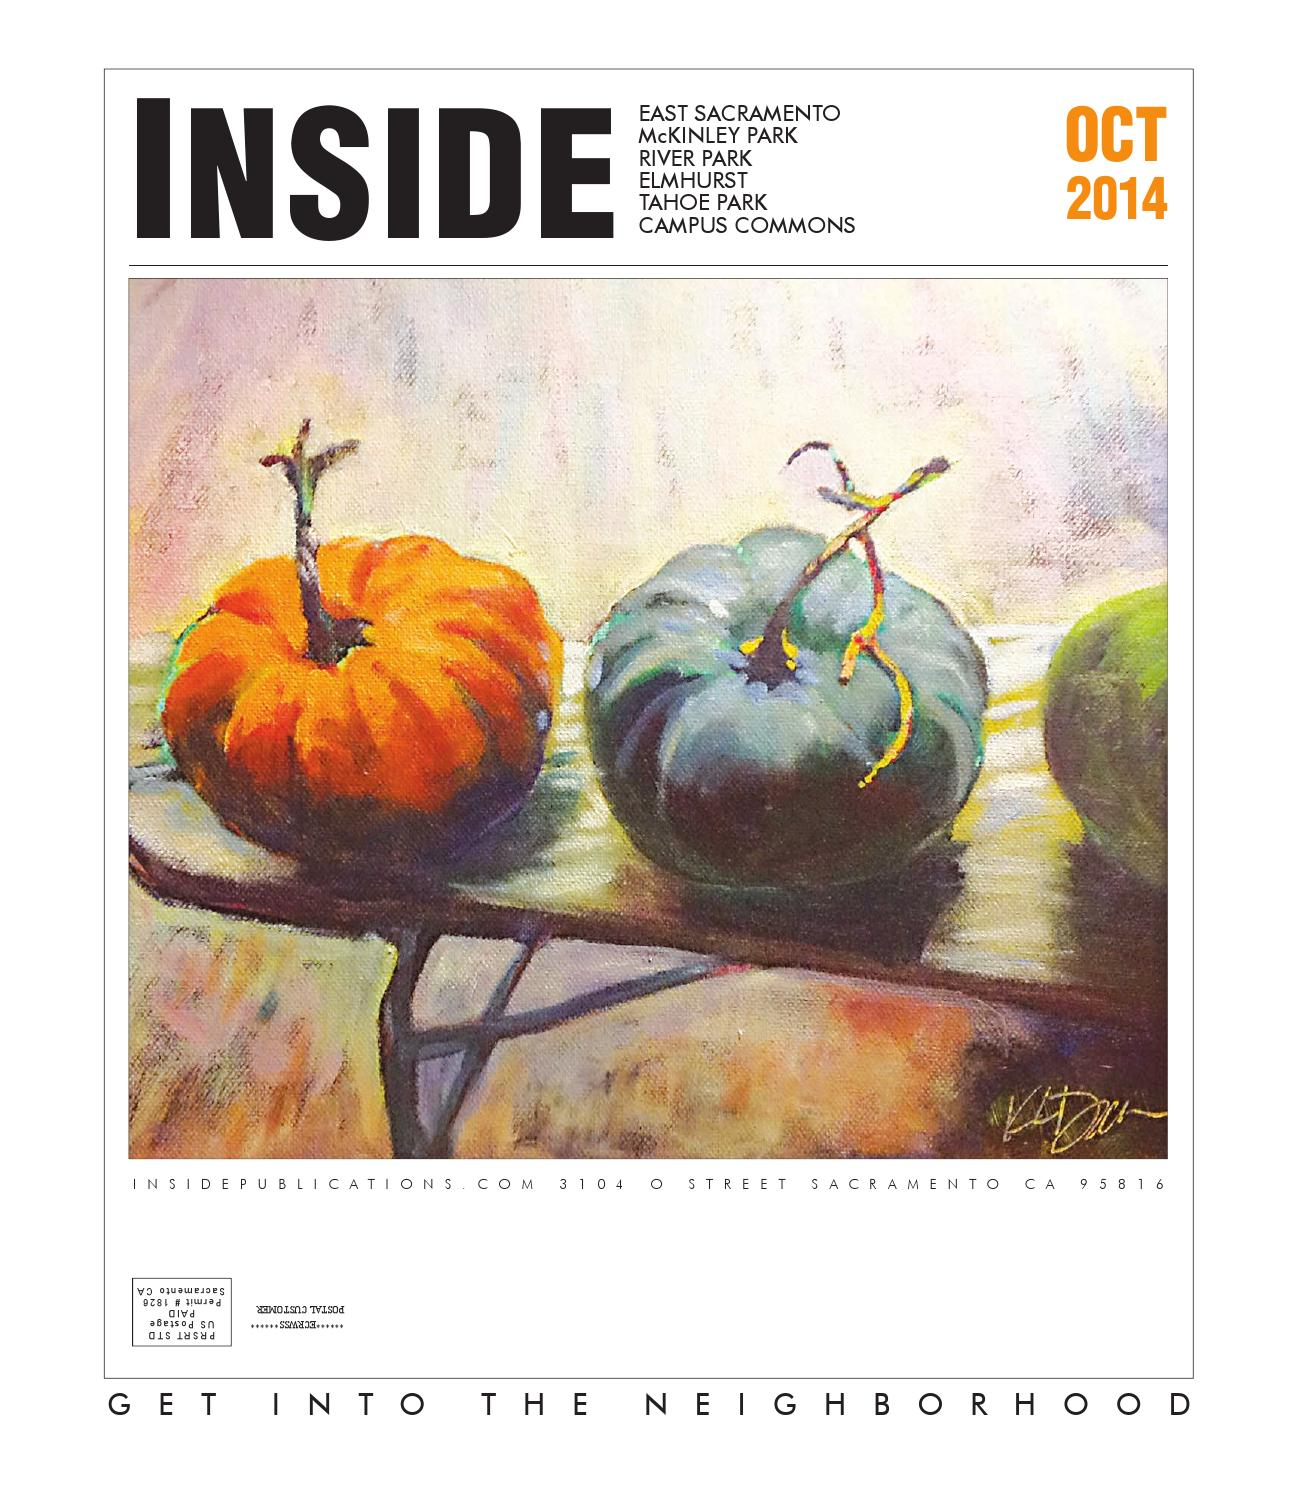 Inside east sacramento oct 2014 by Inside Publications issuu